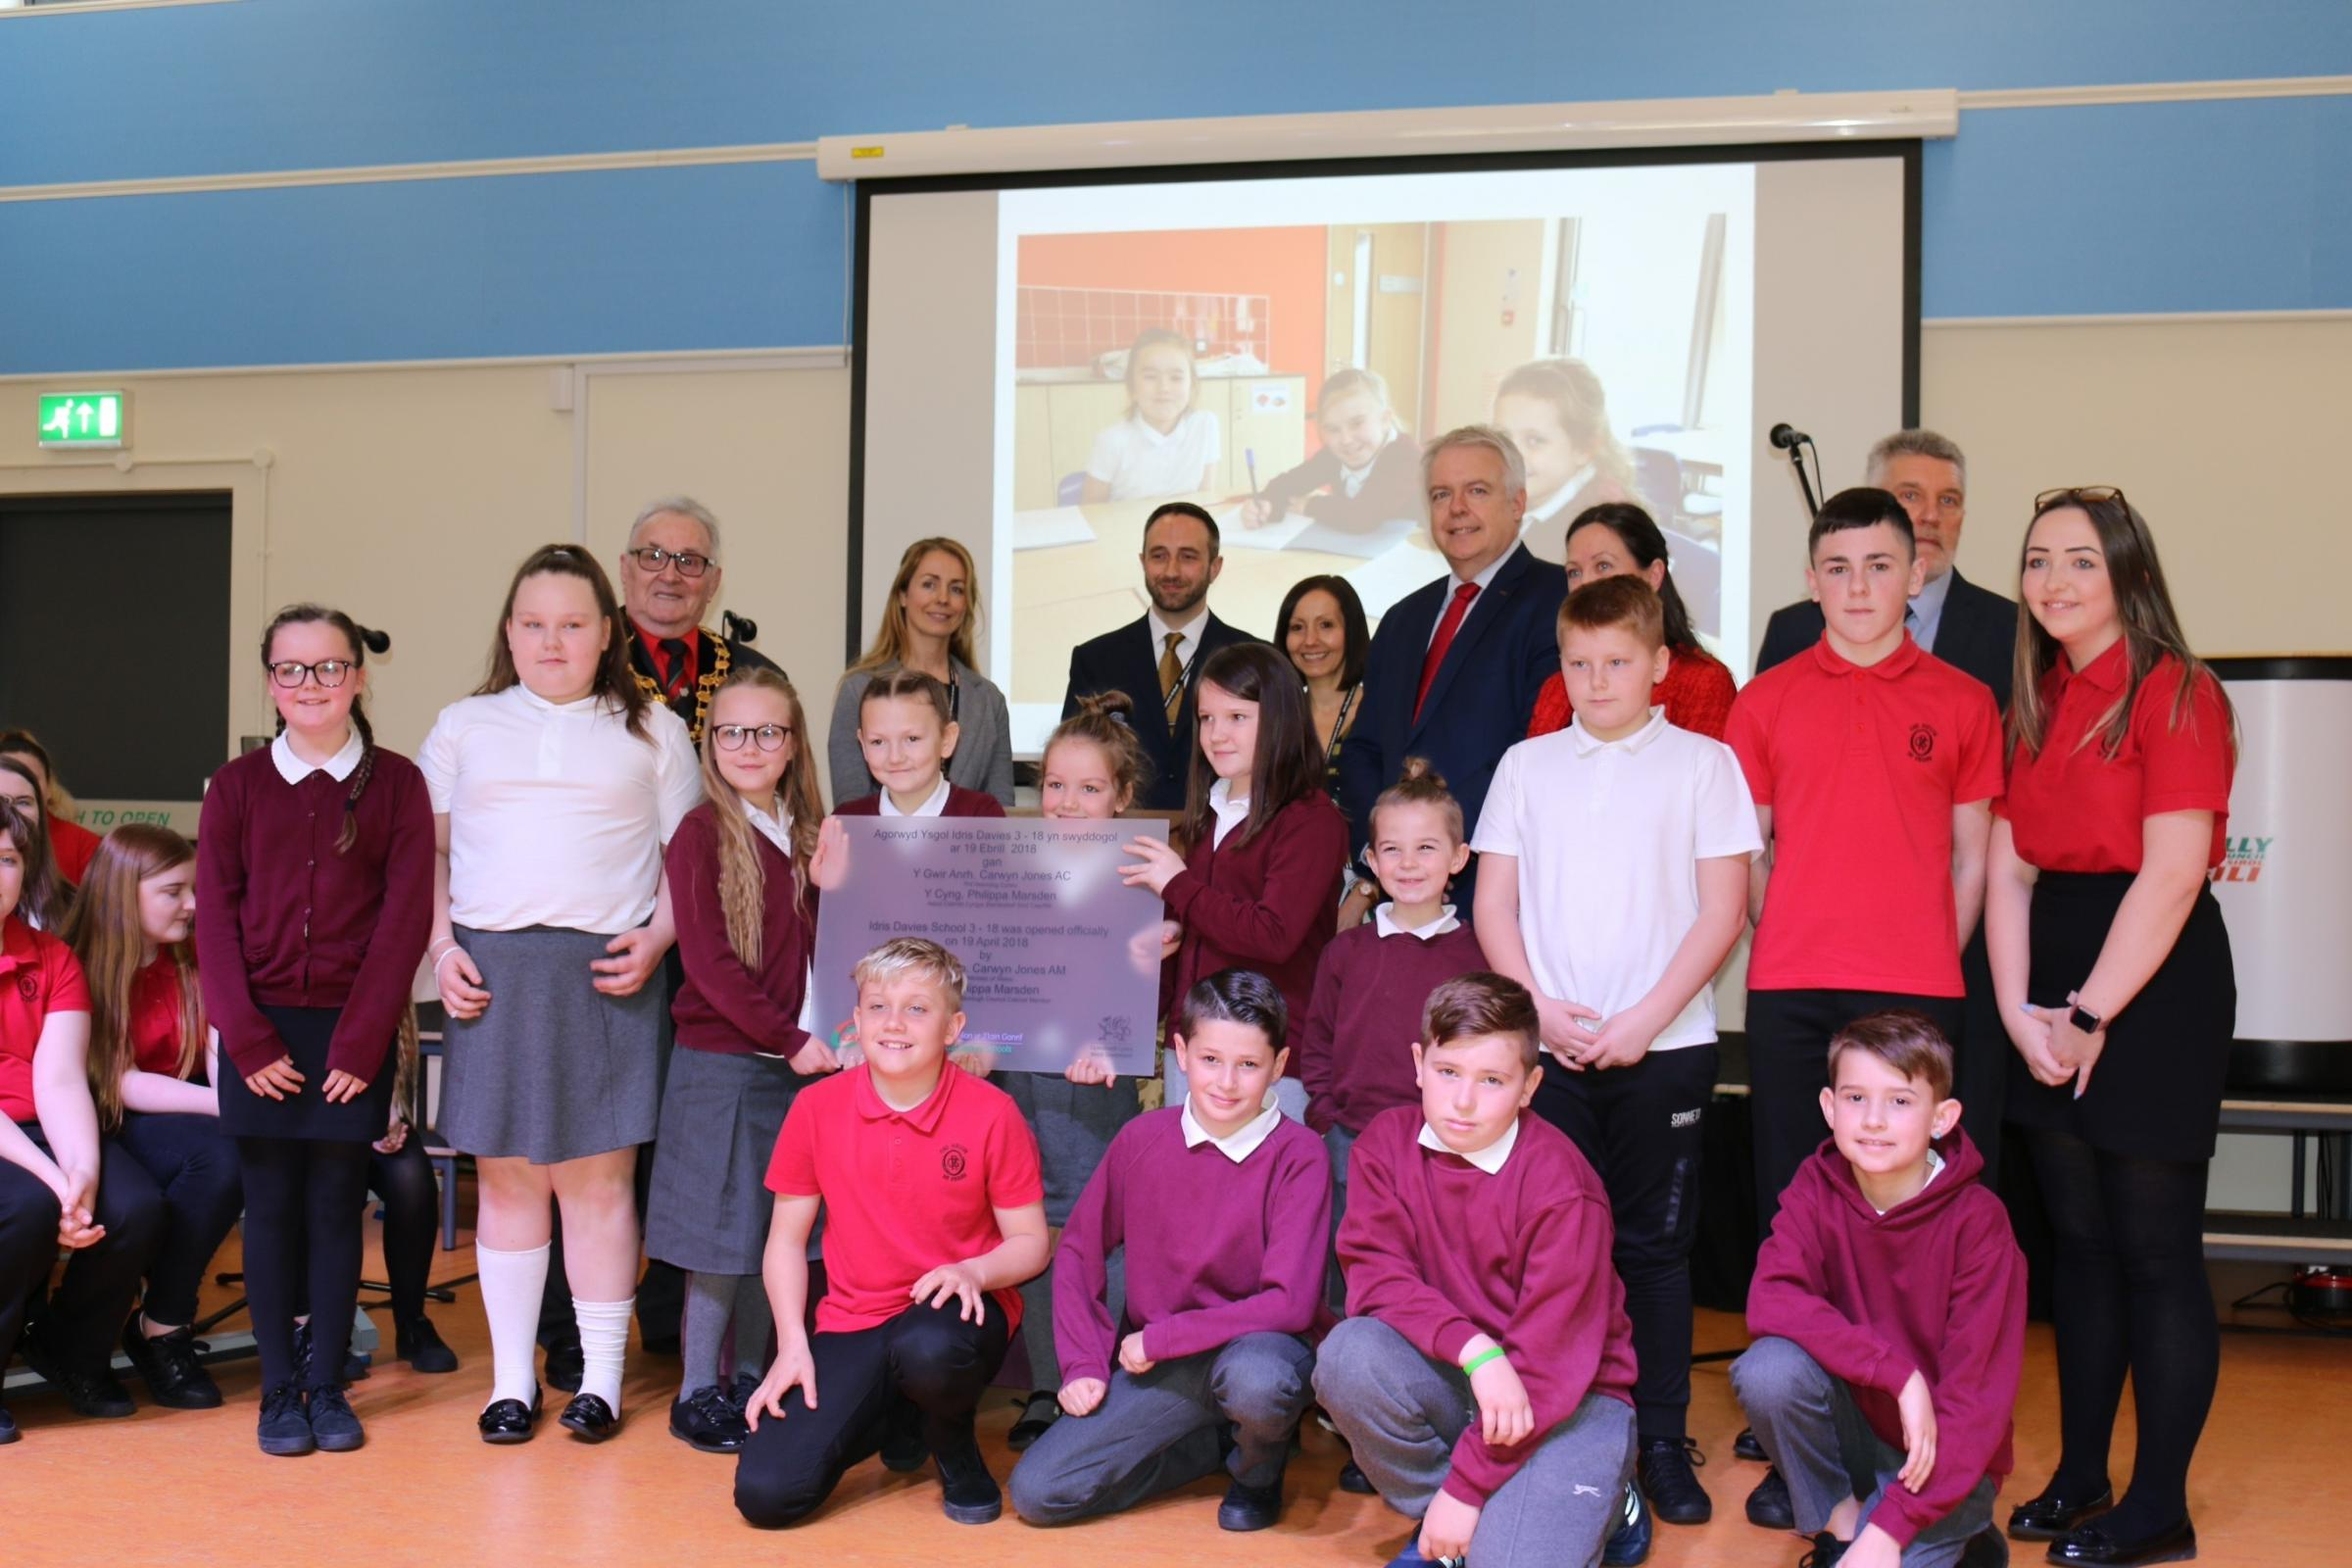 First Minister opens new school